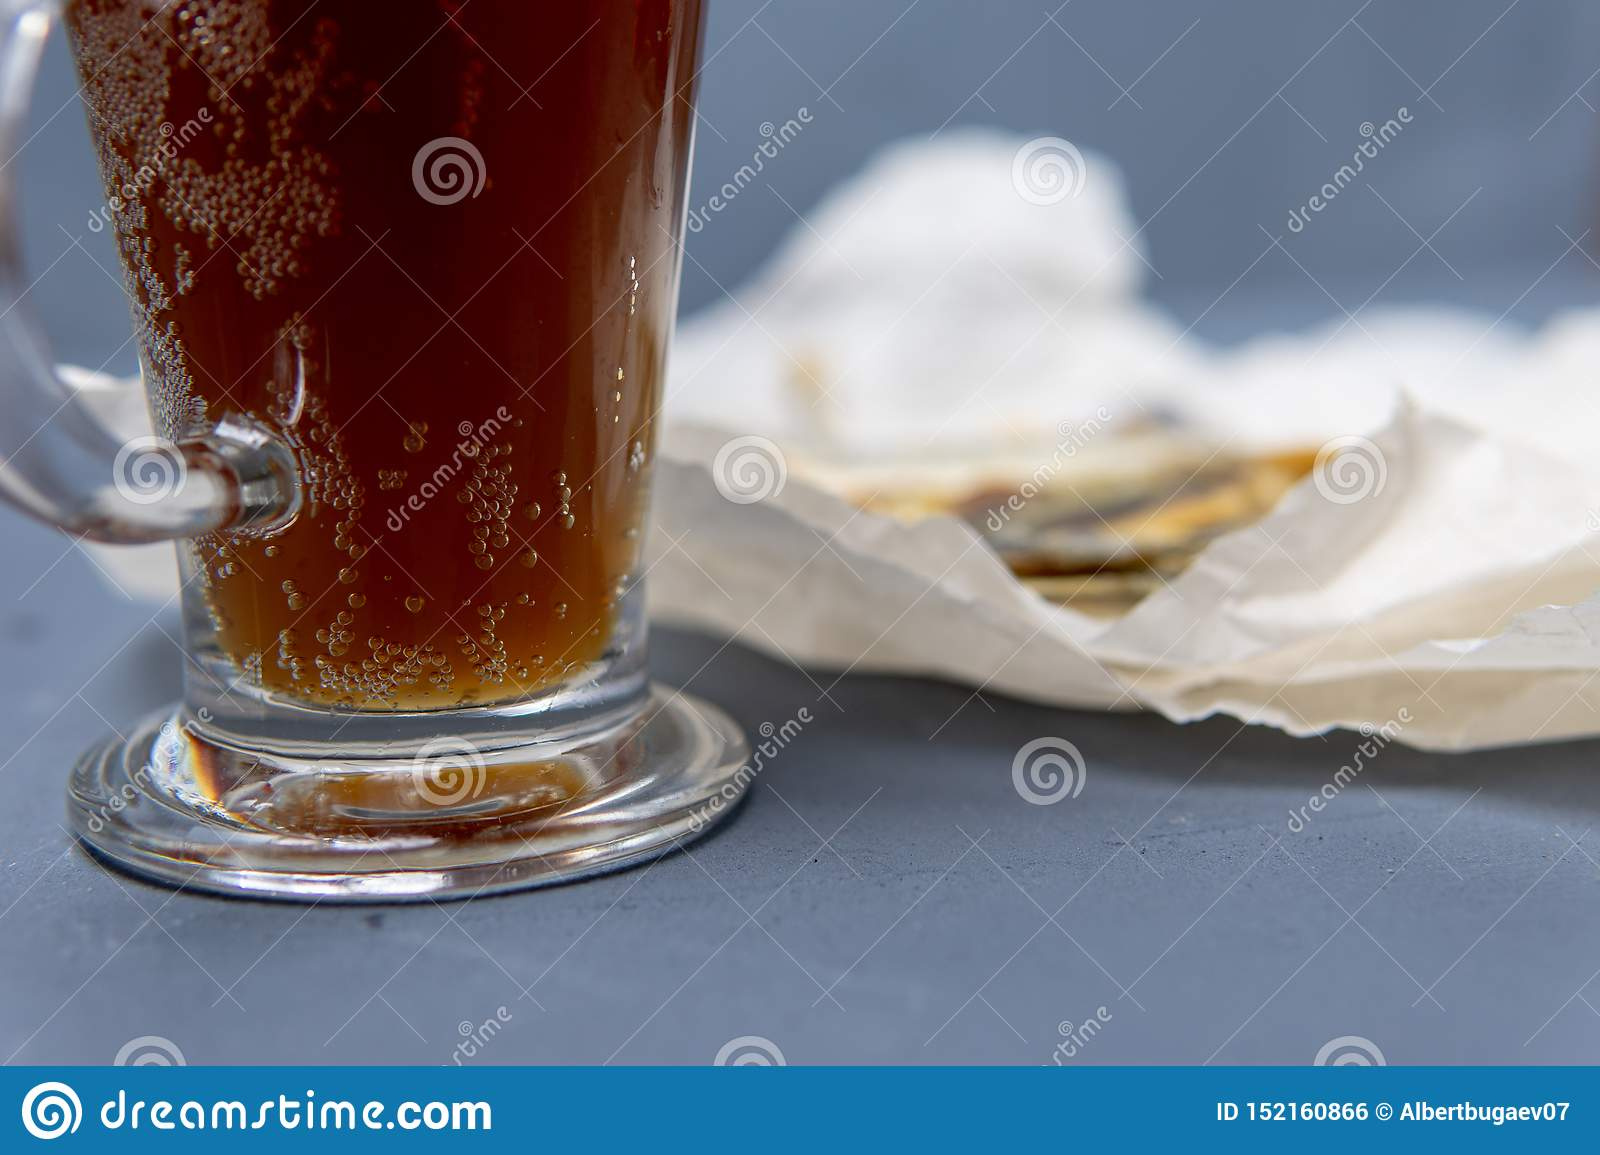 Salted fish lies in unfolded paper